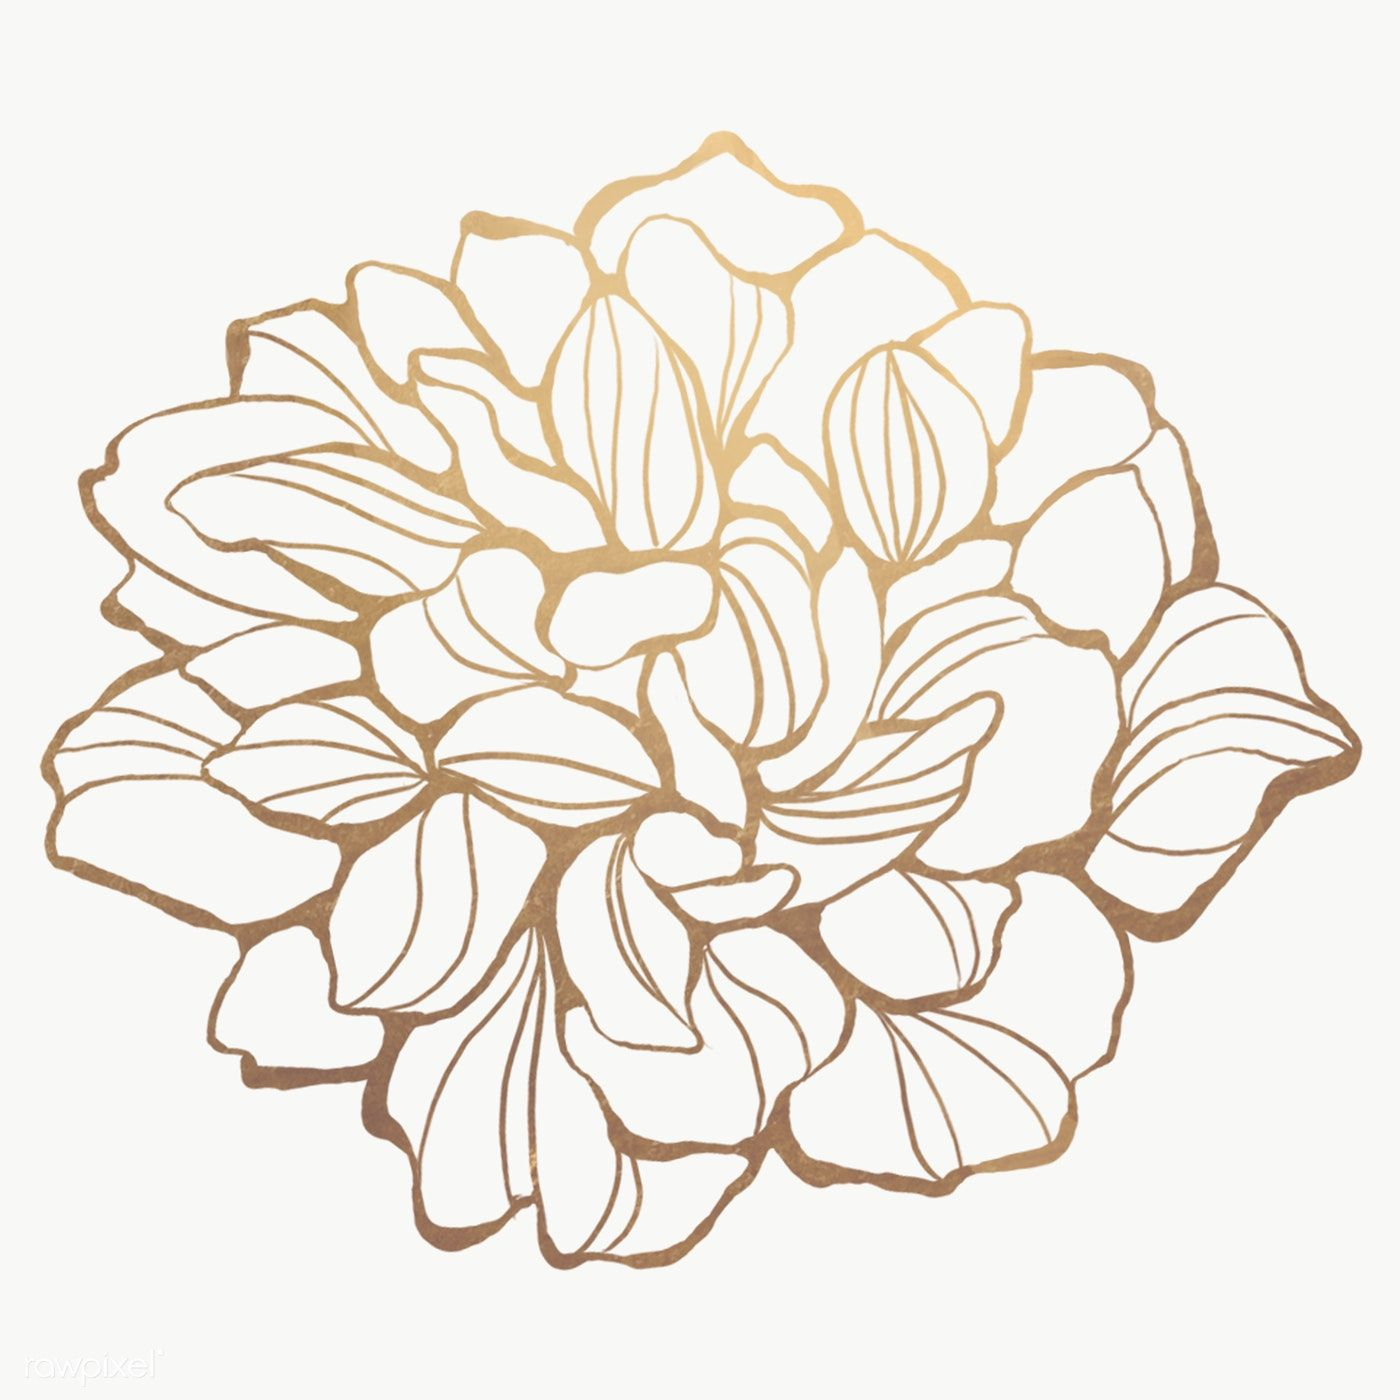 Download Premium Png Of Gold Flower Outline Transparent Png 2019662 Flower Outline Outline Art Line Art Flowers